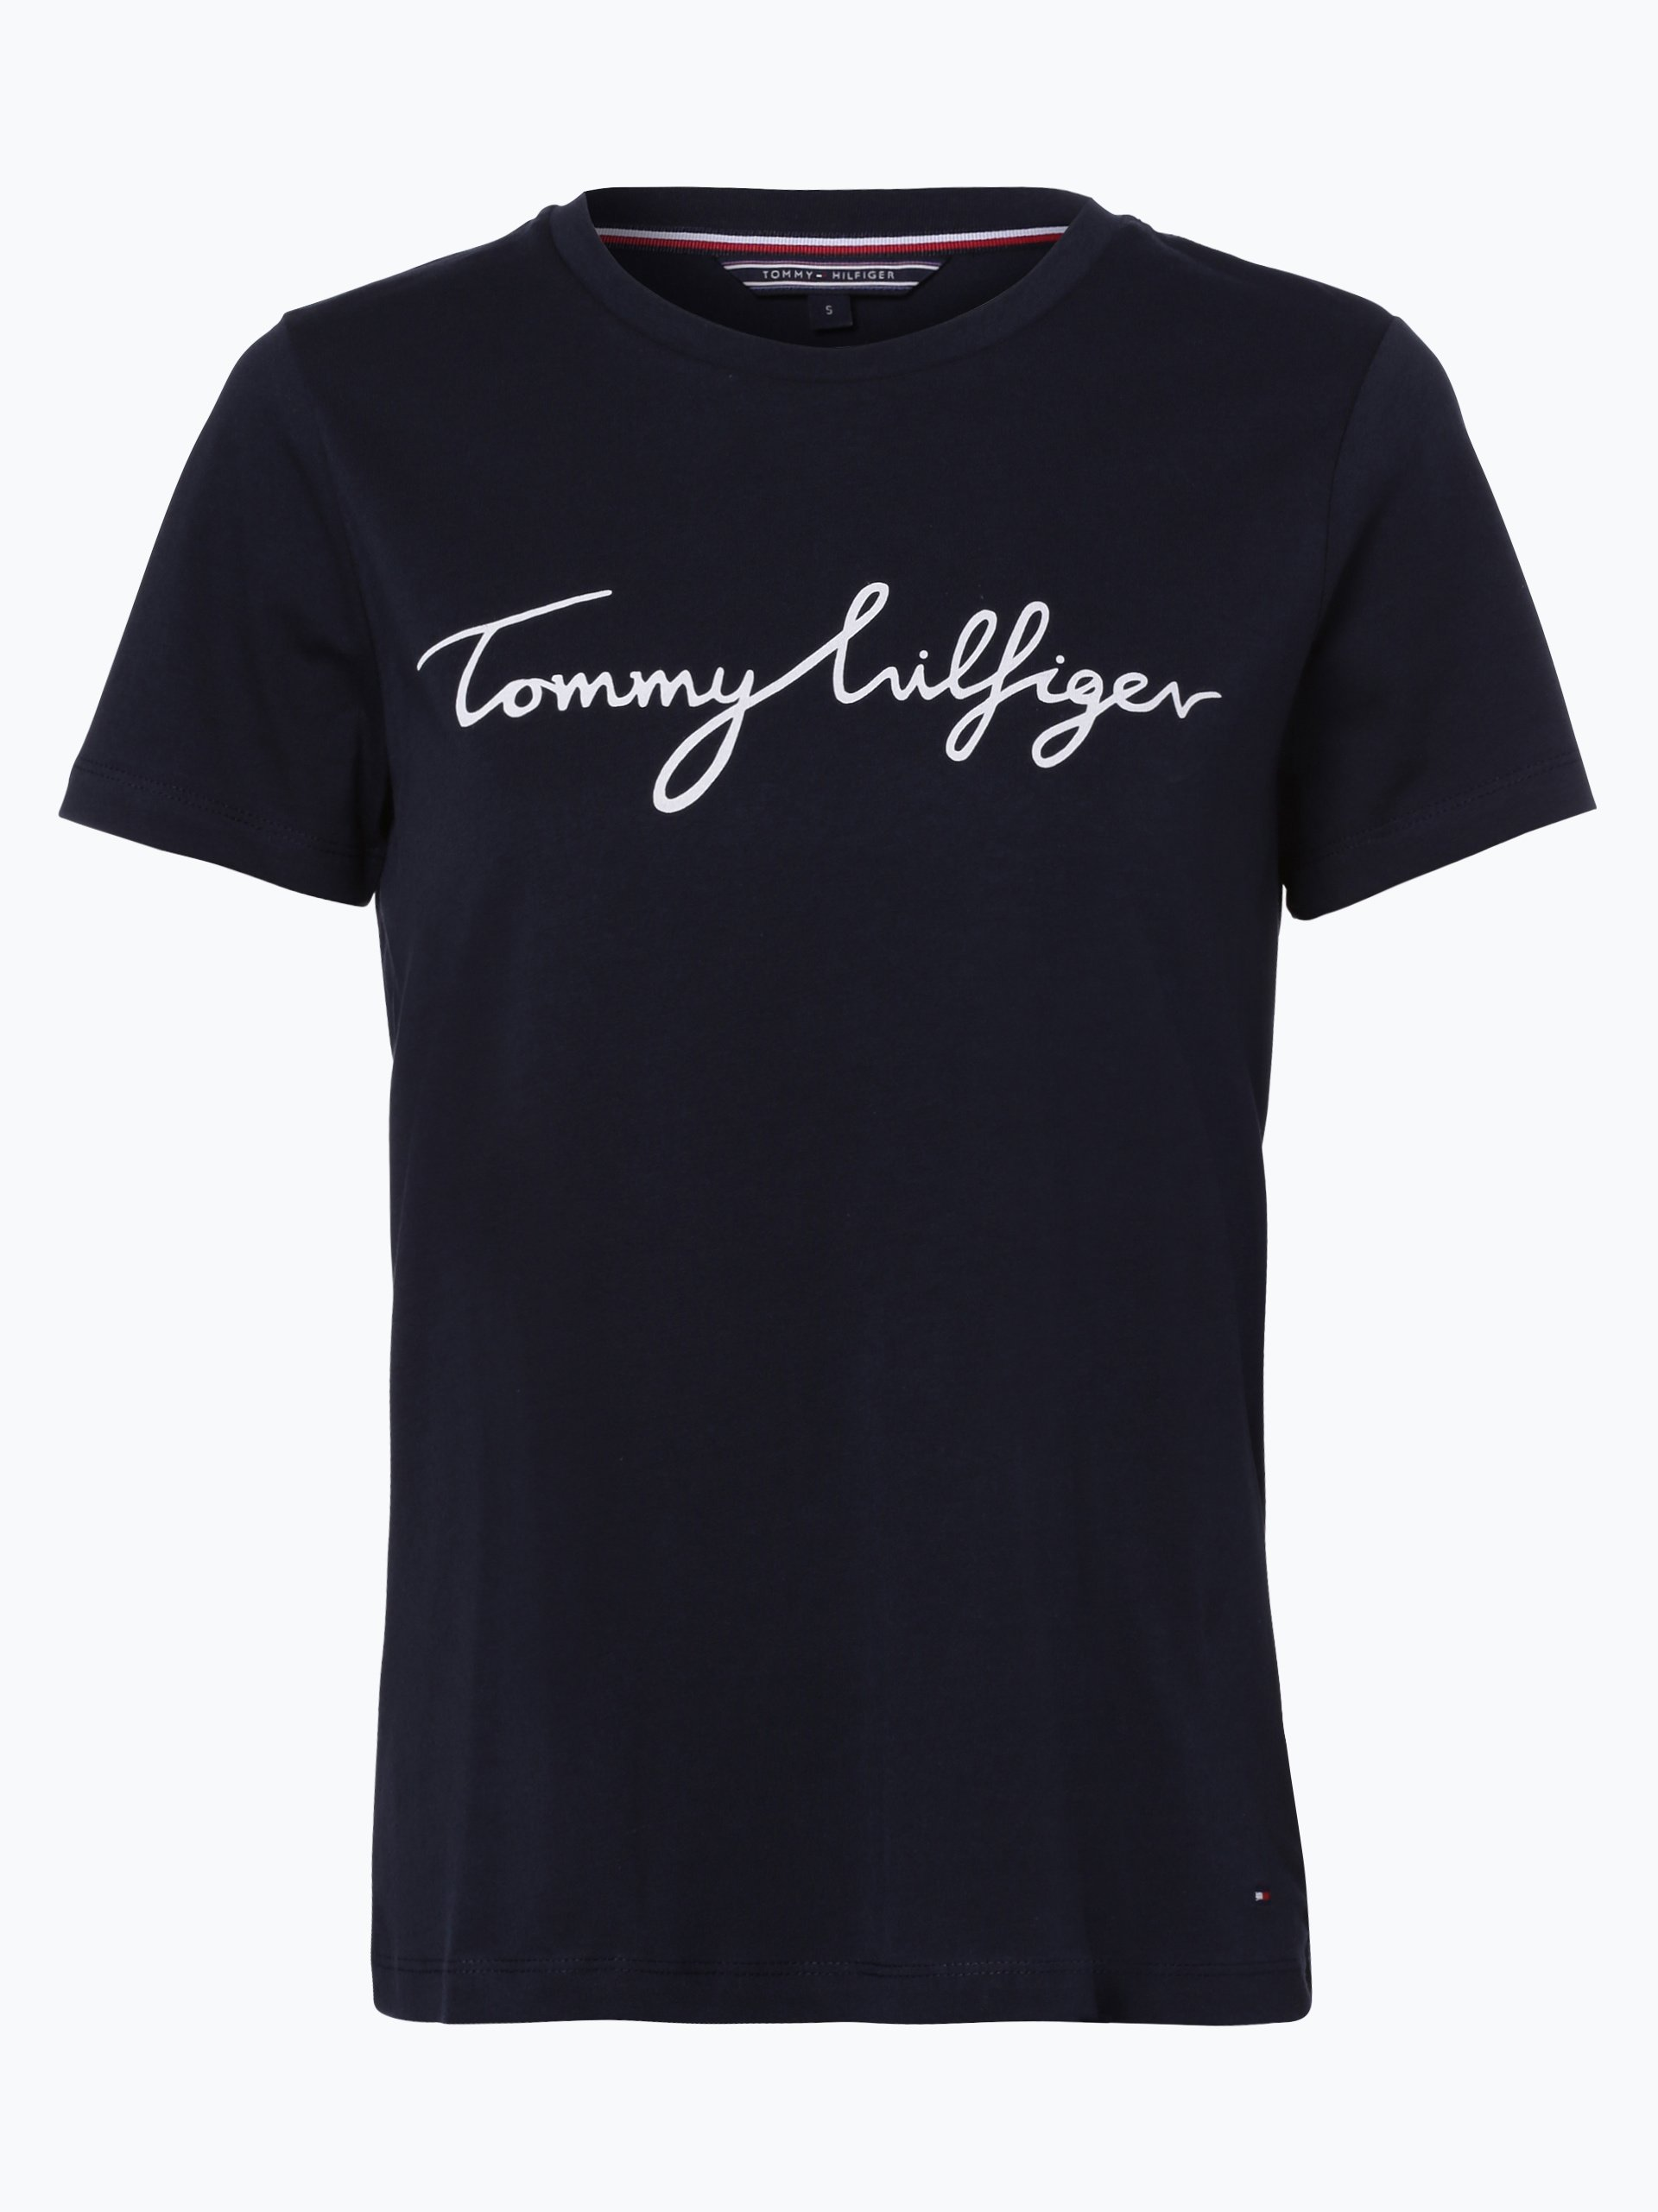 tommy hilfiger damen t shirt marine bedruckt online kaufen peek und cloppenburg de. Black Bedroom Furniture Sets. Home Design Ideas